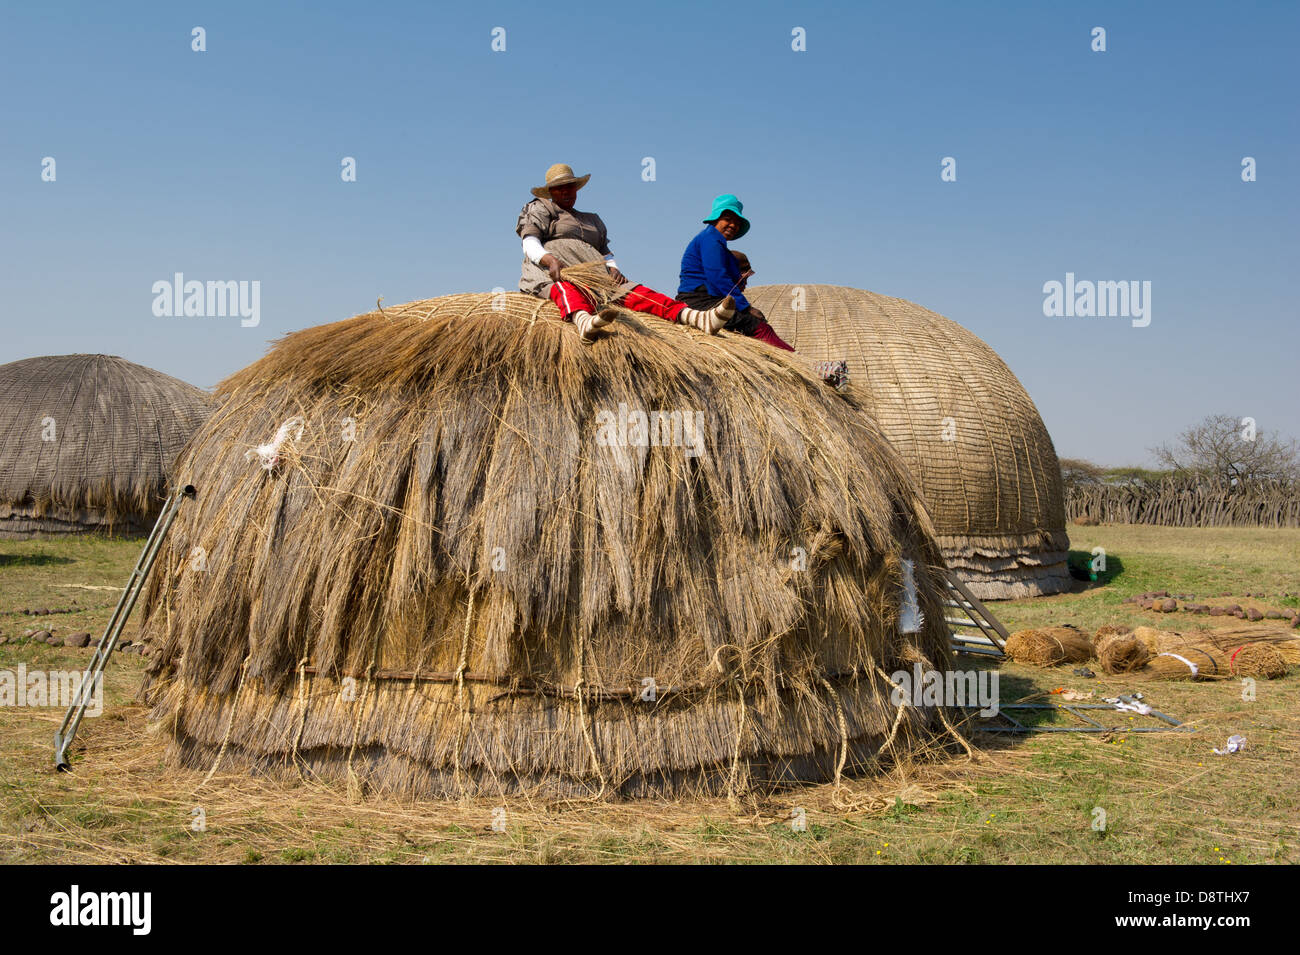 Woman thatching a hut at Ondini Heritage Site, Recreation of King Cetshwayo's residence at Ondini, Ulundi, South - Stock Image